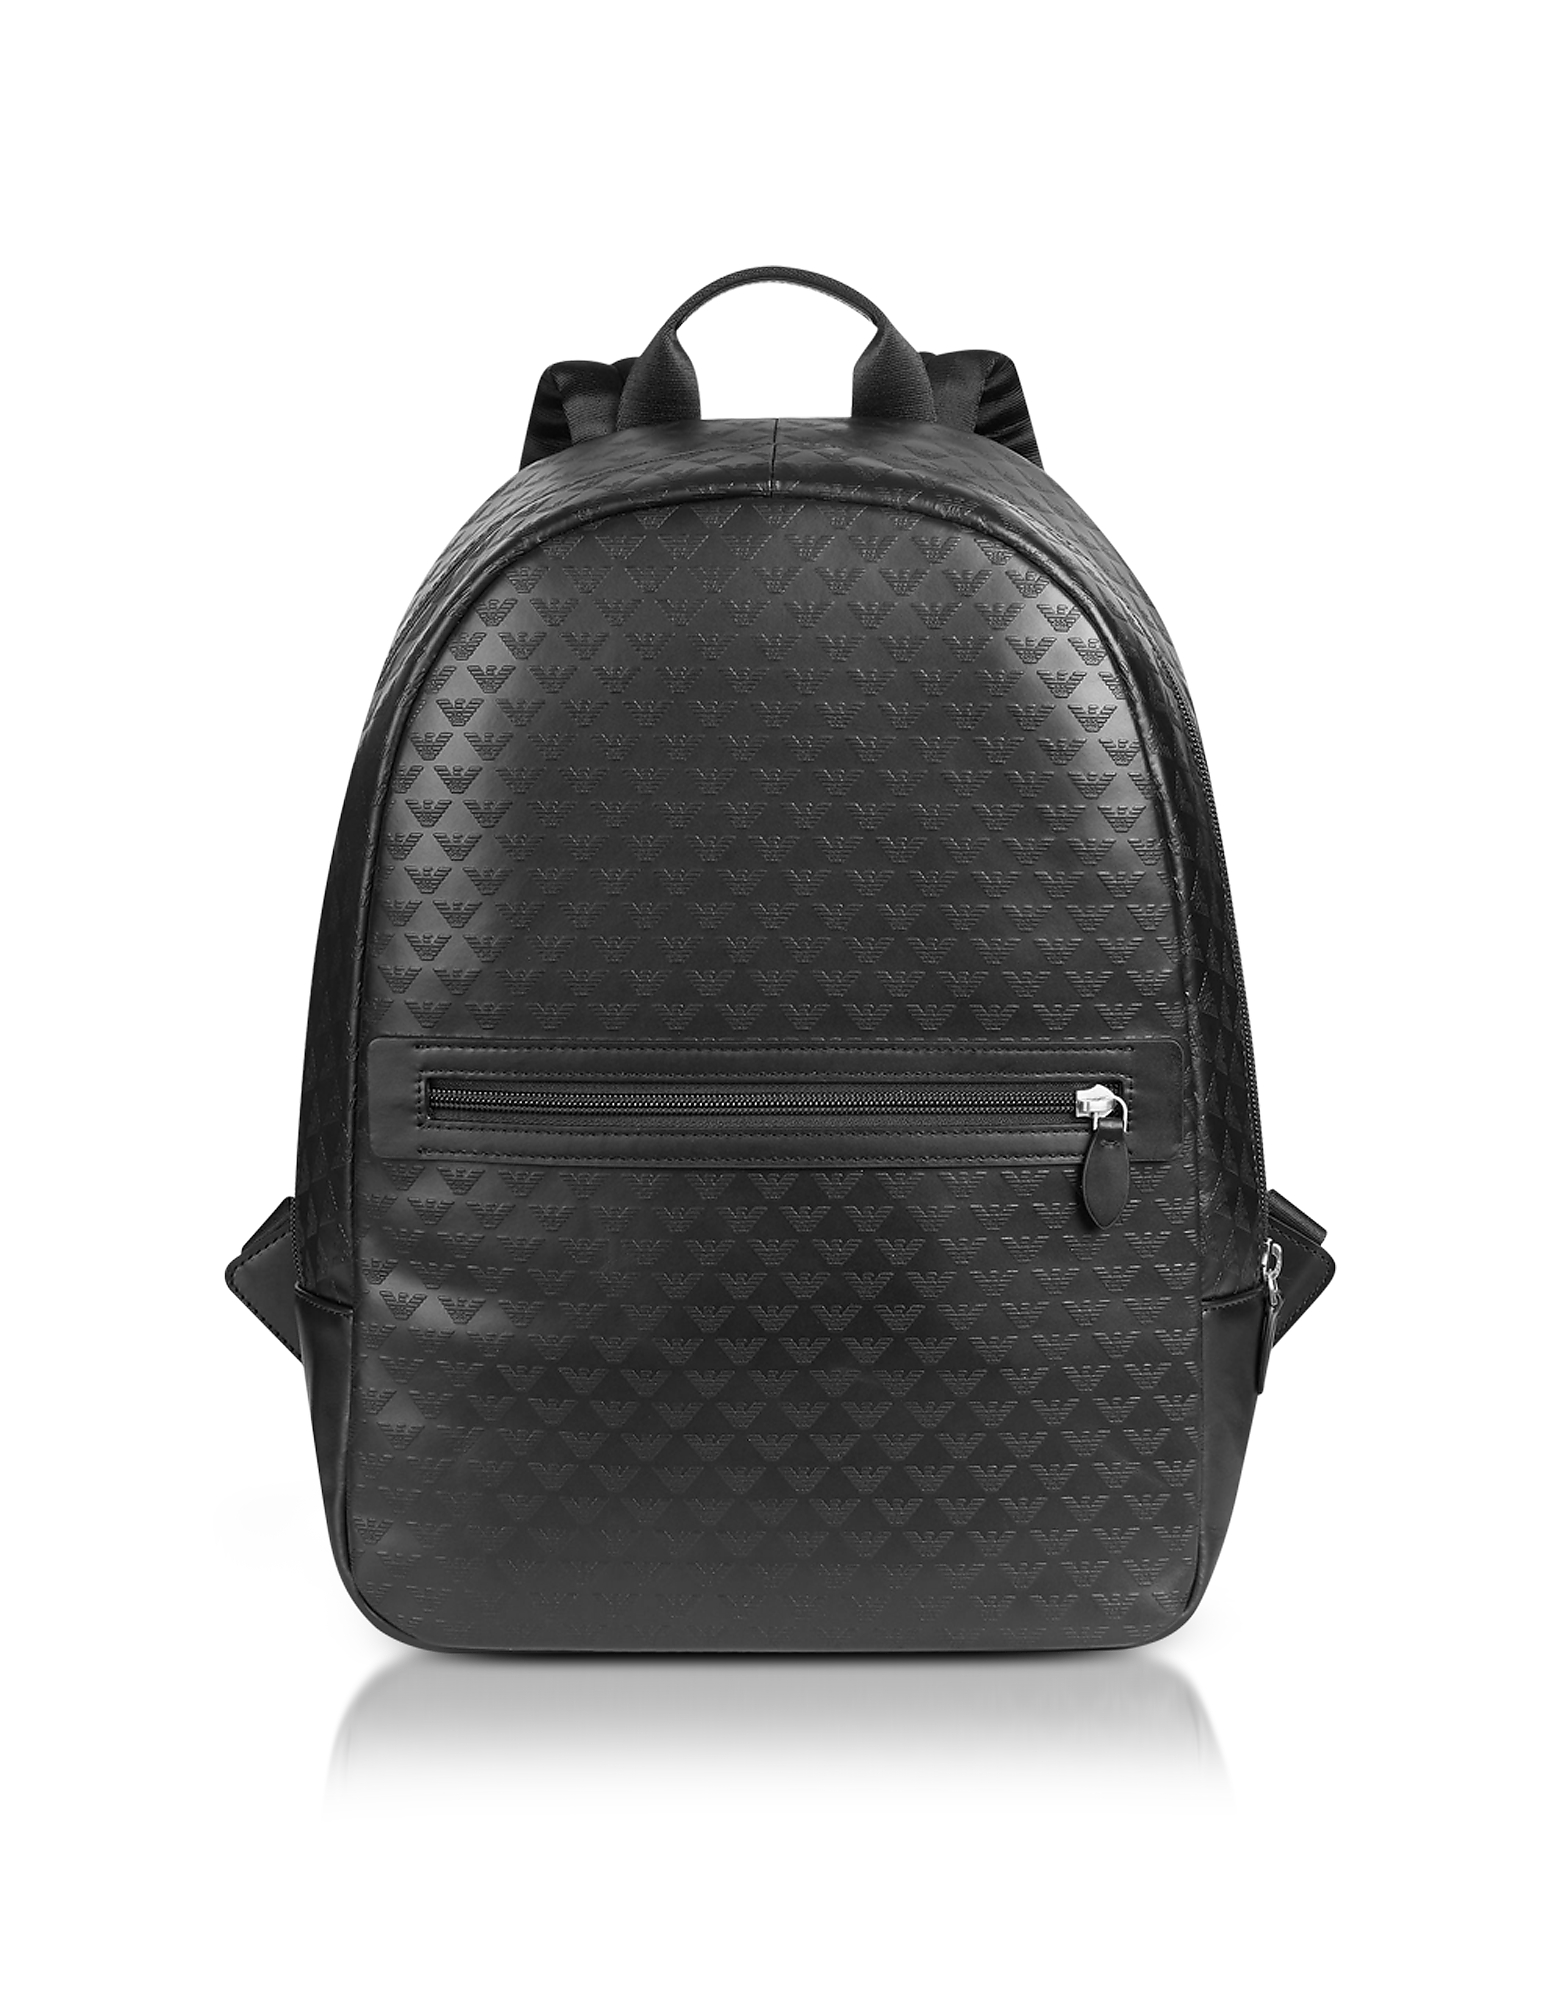 Allover Signature Black Leather Men's Backpack